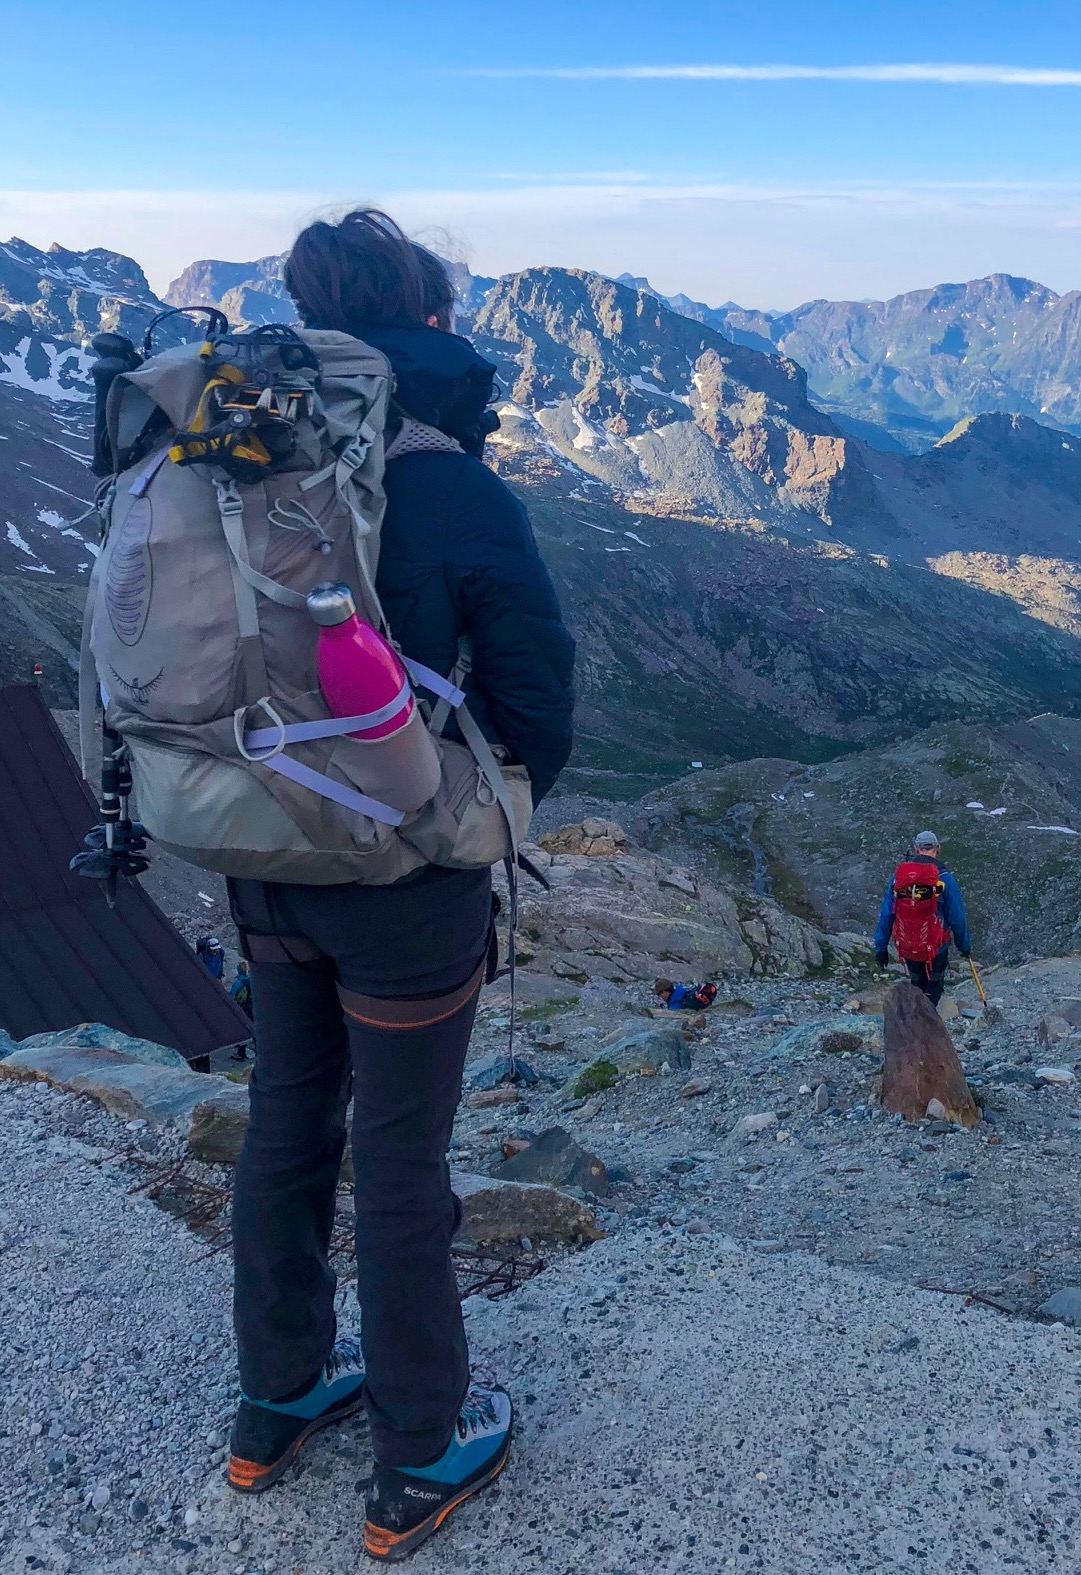 Girl looking out over mountain scenery, picture taken from behind. She is wearing an Osprey Aura Anti-Gravity rucksack with trekking poles attached, crampons sticking out the top and a pink water bottle in the side pocket. Glacier hiking alps.